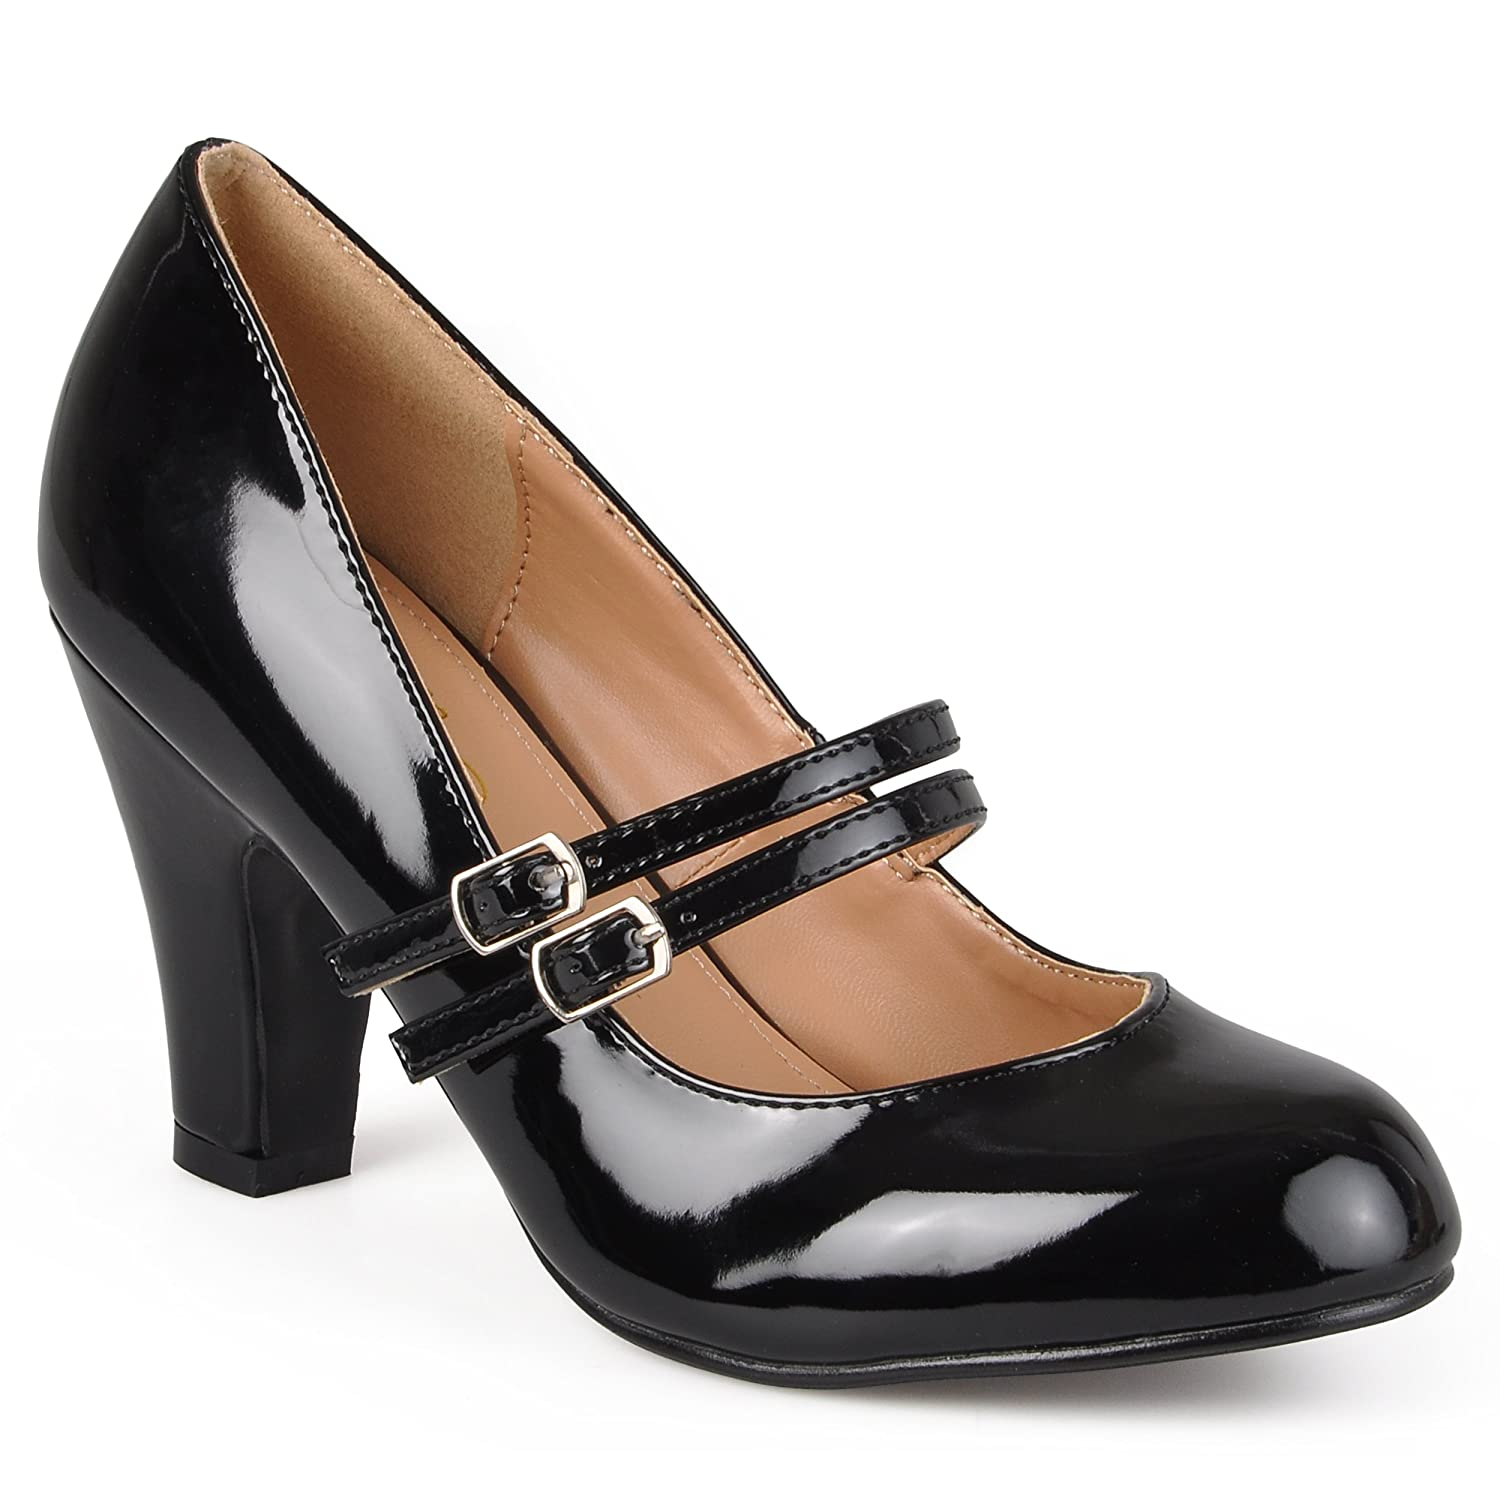 Journee Collection Womens Mary Jane Faux Leather Pumps $31.99 AT vintagedancer.com